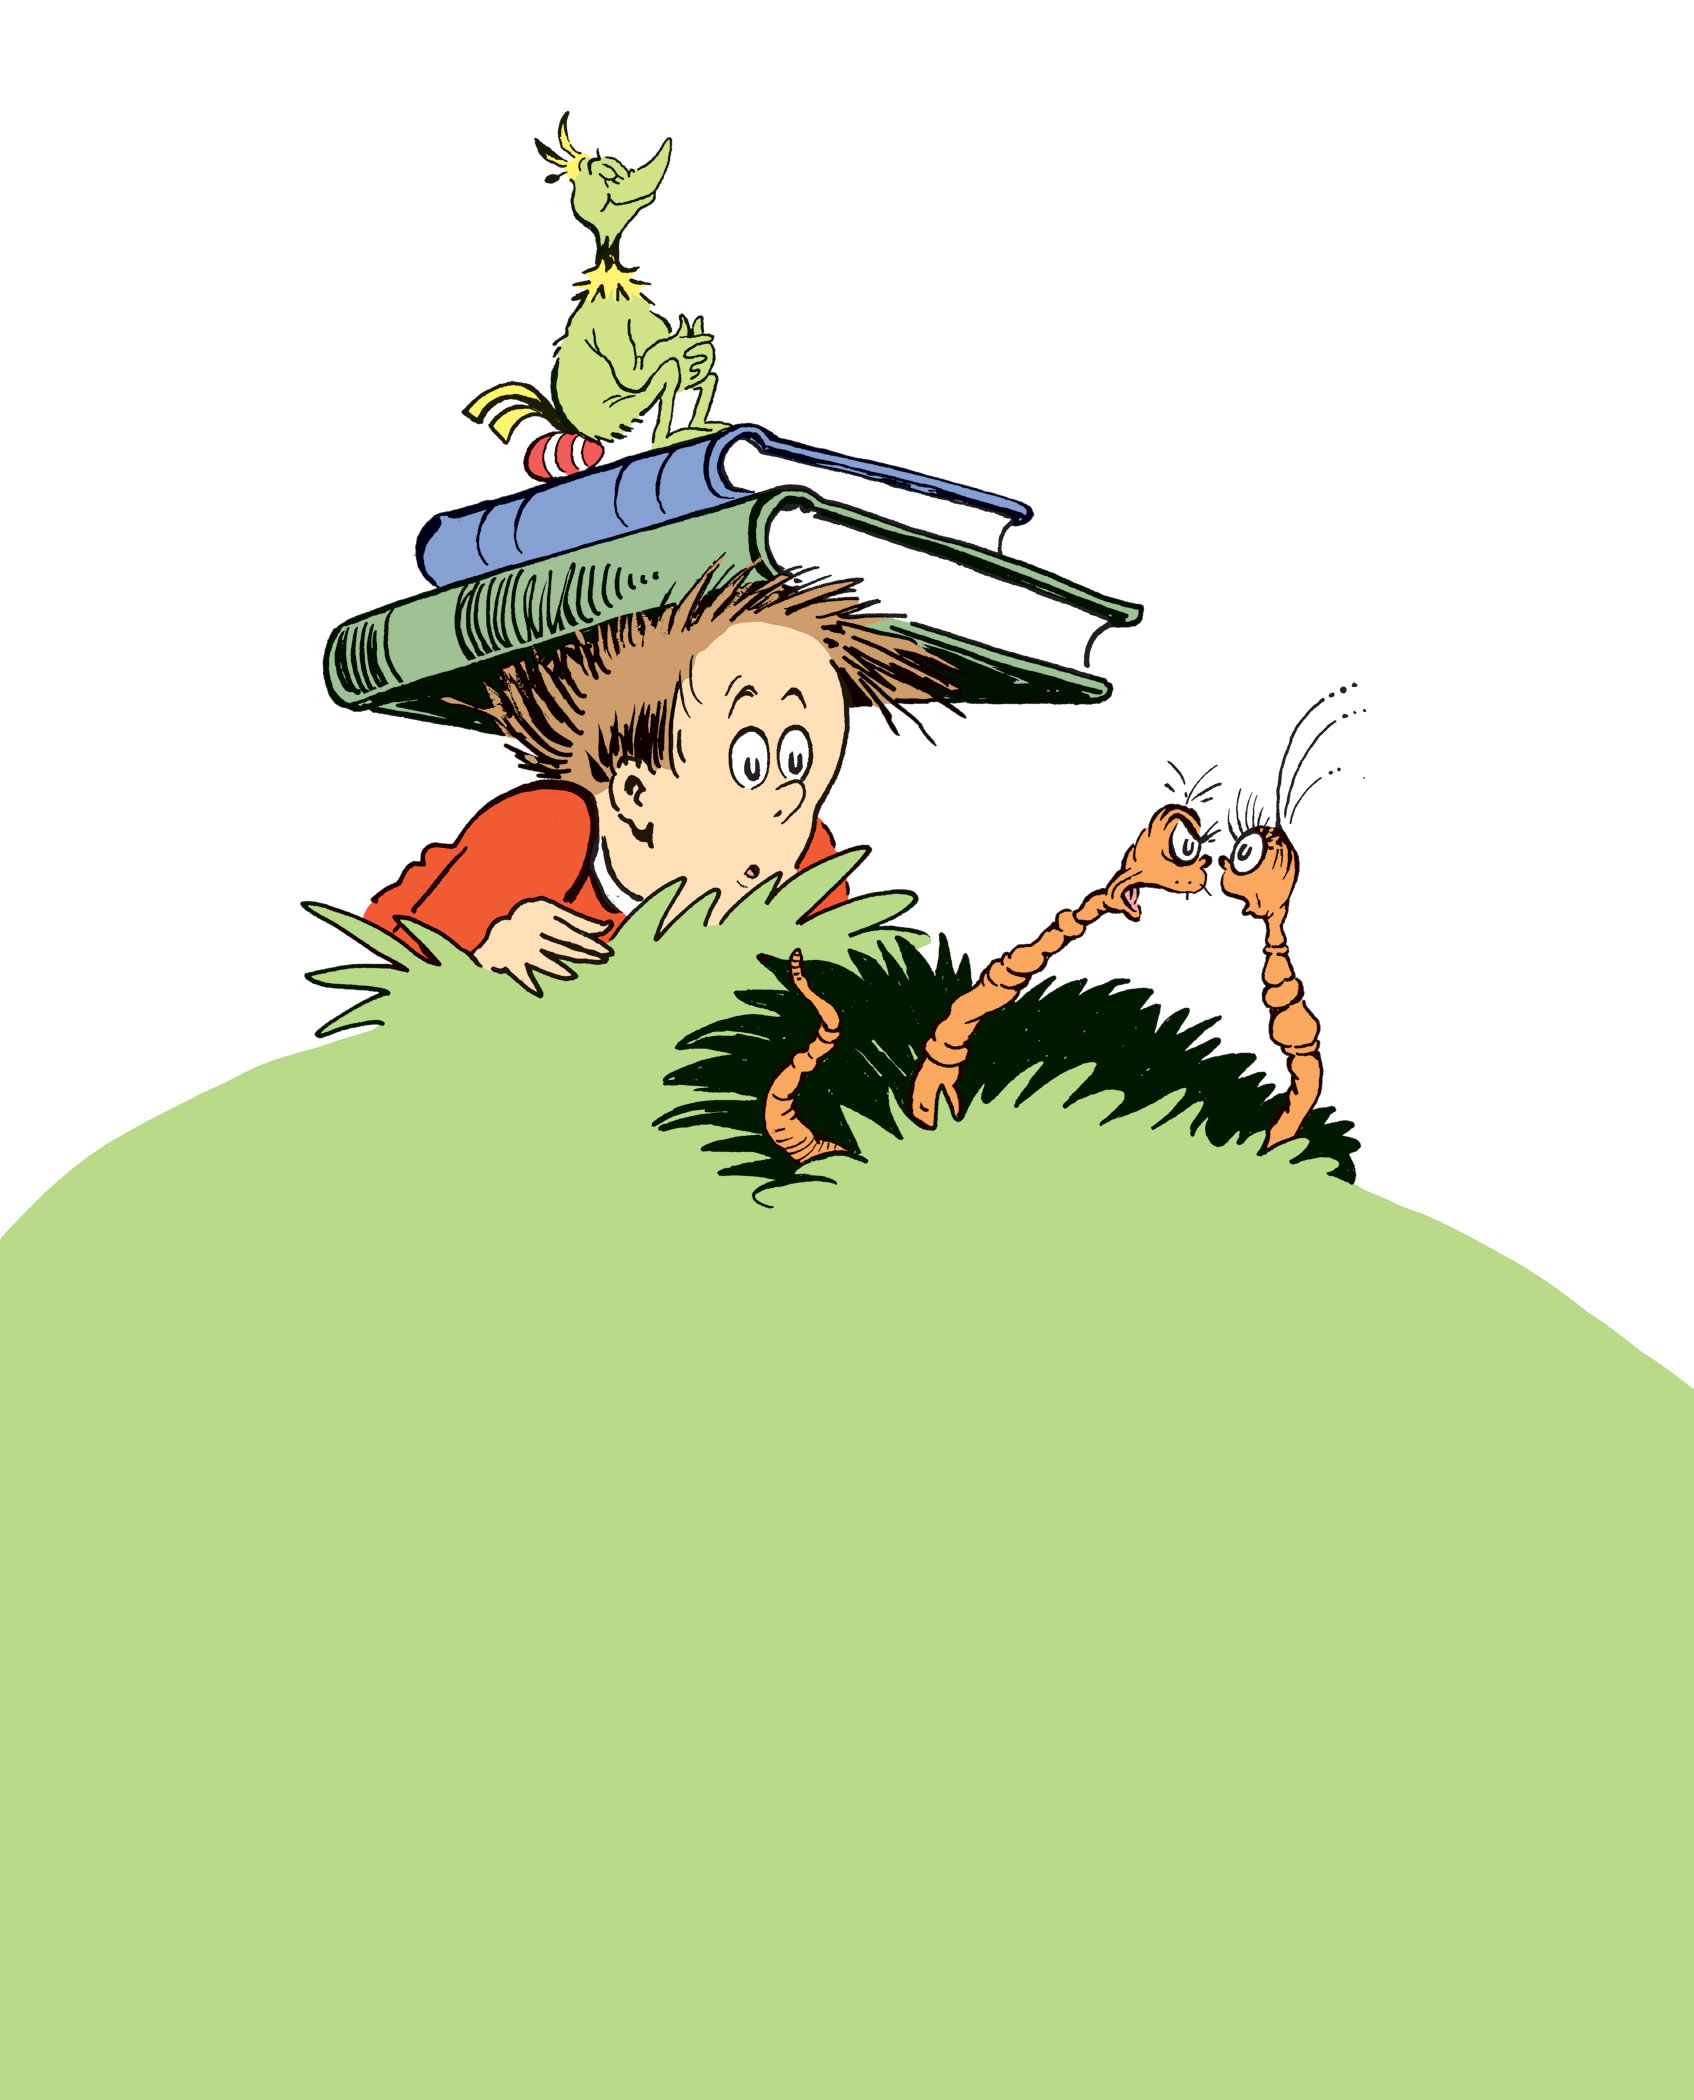 Marco in an illustration from Horton and the Kwuggerbug and More Lost Stories by Dr. Seuss